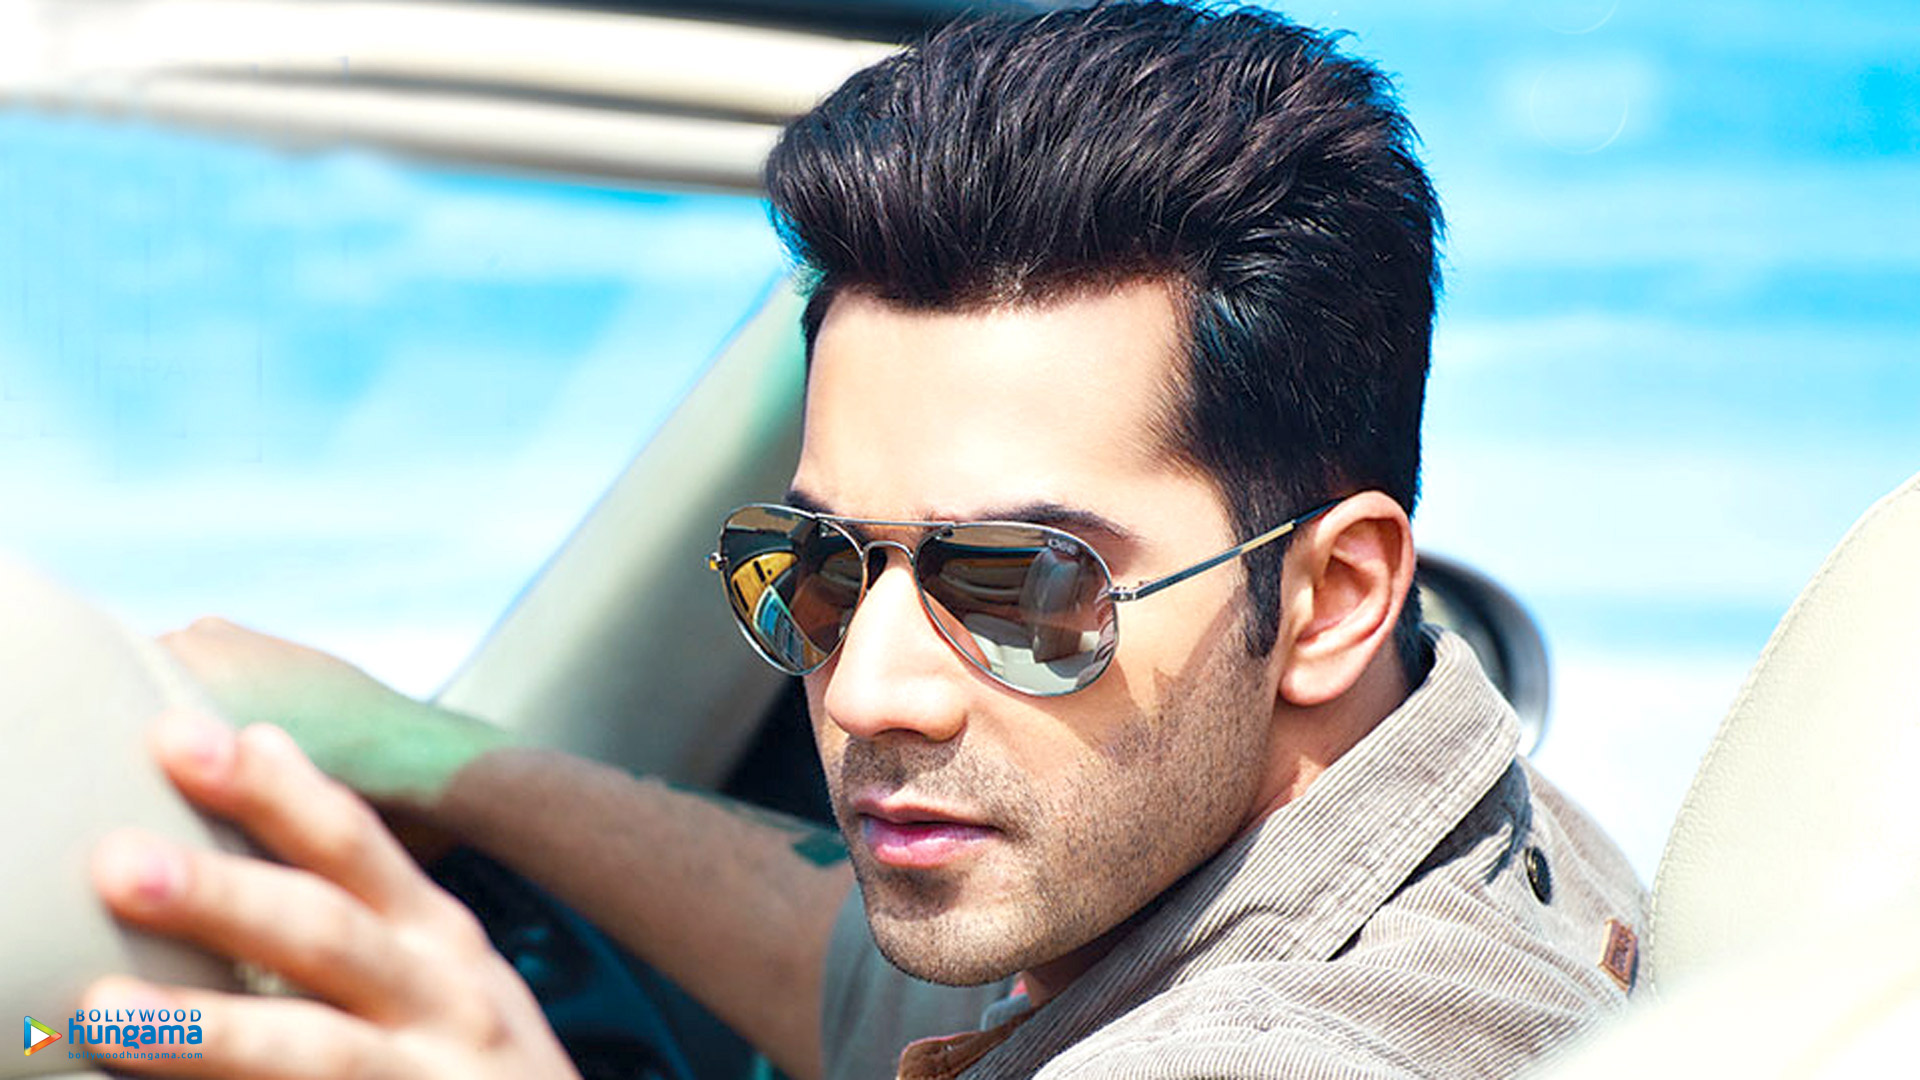 Varun Dhawan Wallpapers | varun-dhawan-31 - Bollywood Hungama